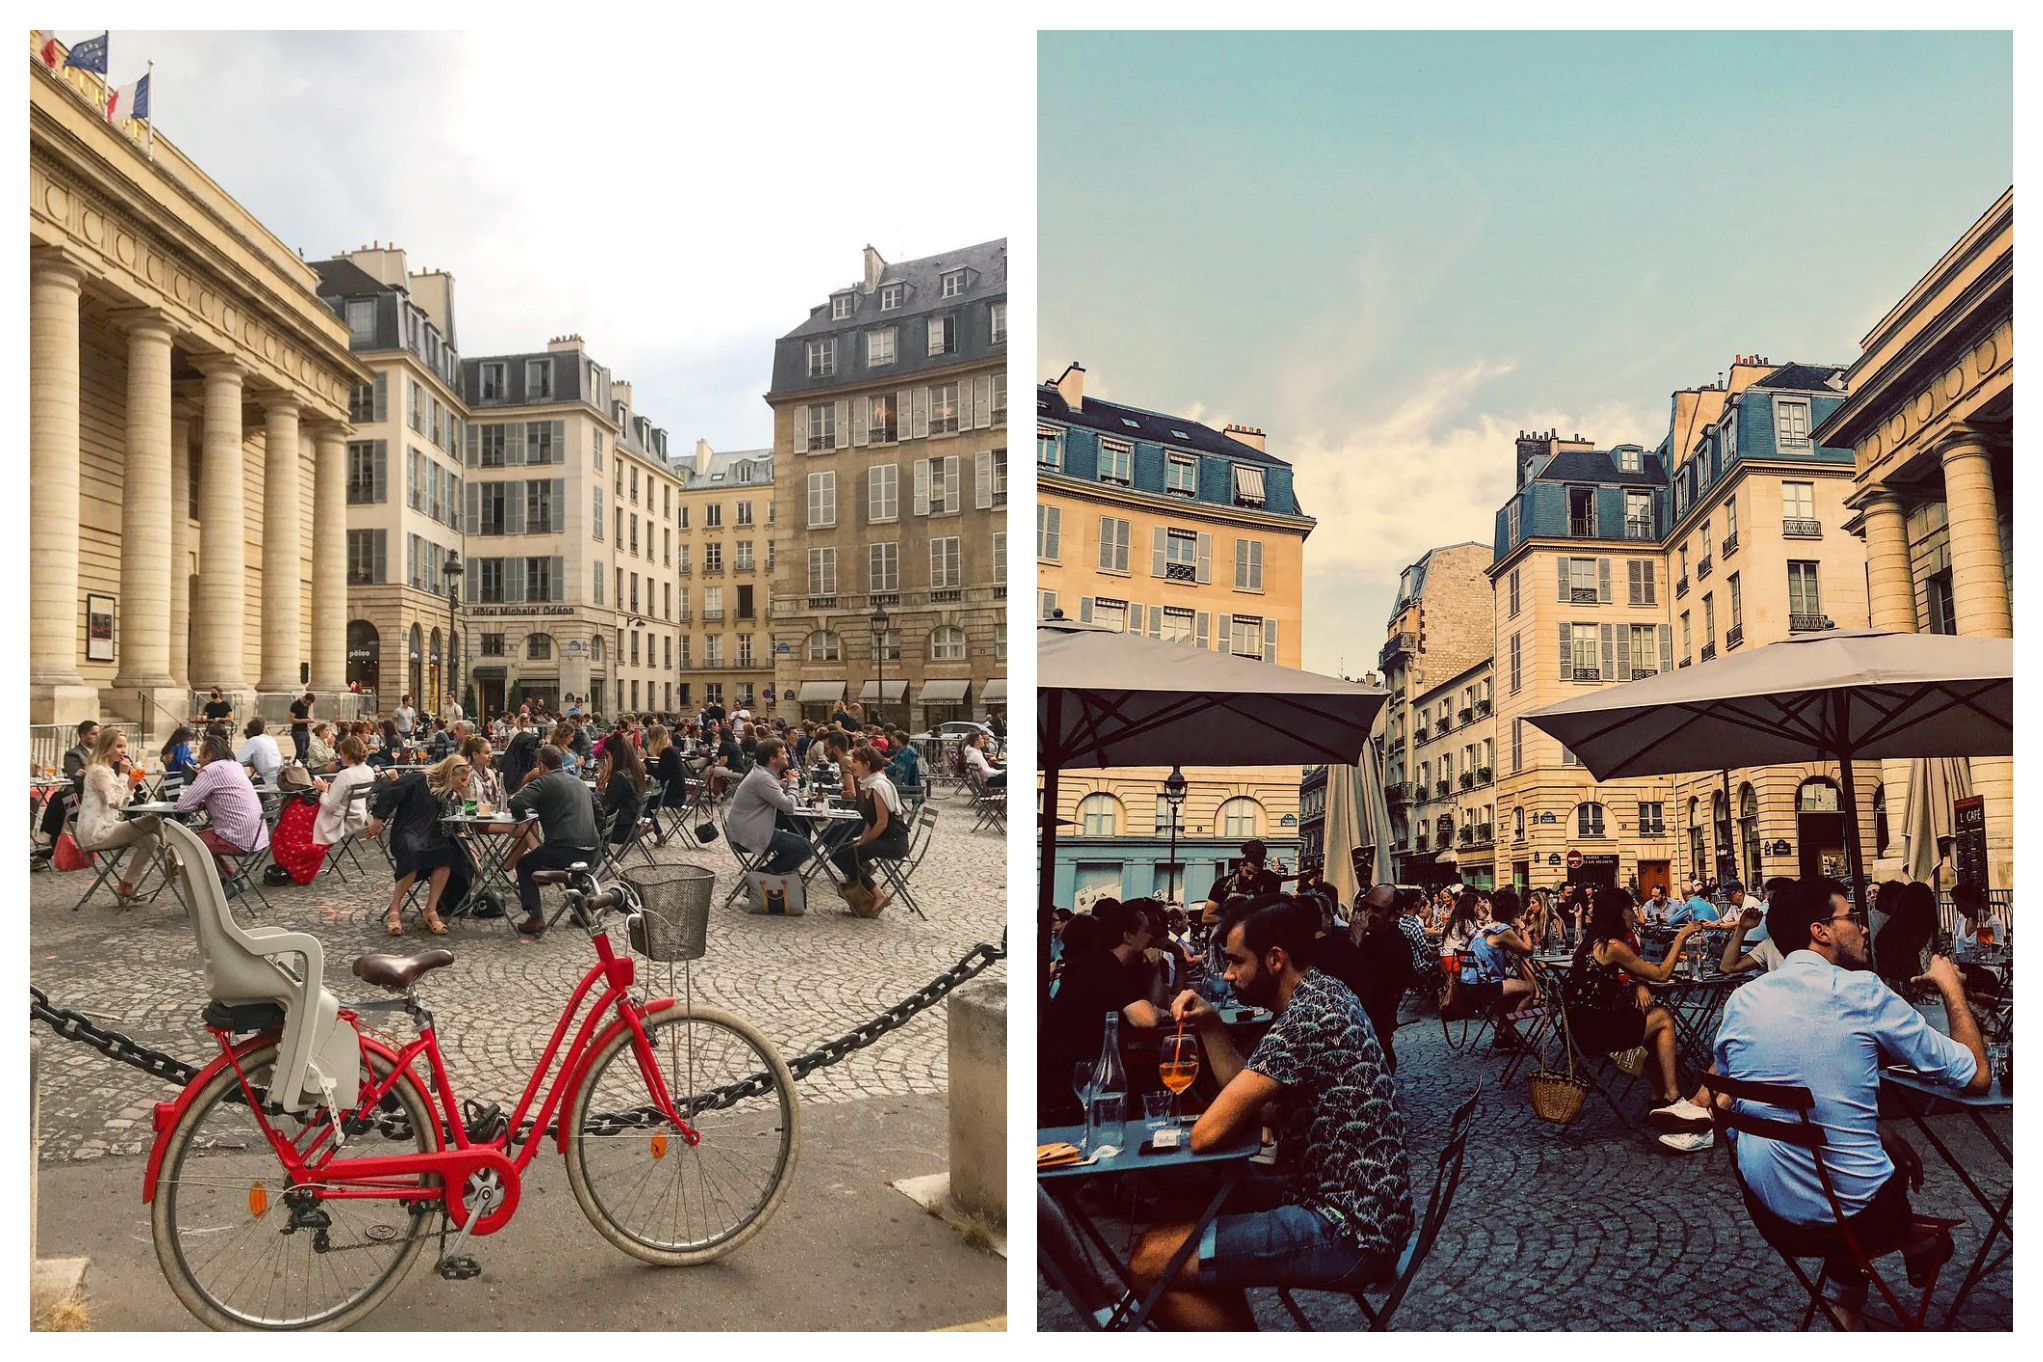 Two pictures from Cafe de l'Odéon which is situated in the Place de l'Odéon, which is right in front of Théatre de l'Odéon. Crowds seated in at least 20 sets of tables and chairs are enjoying their time.